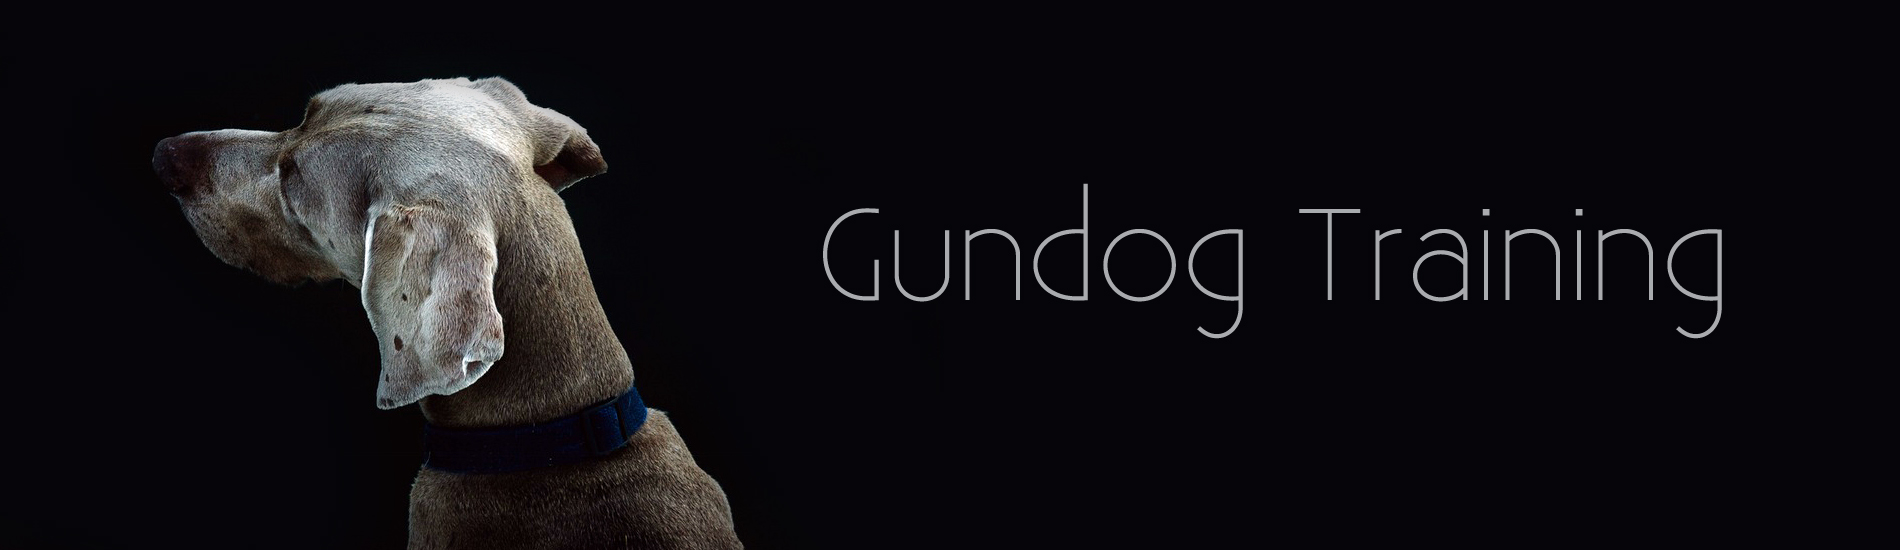 Gundog training slider